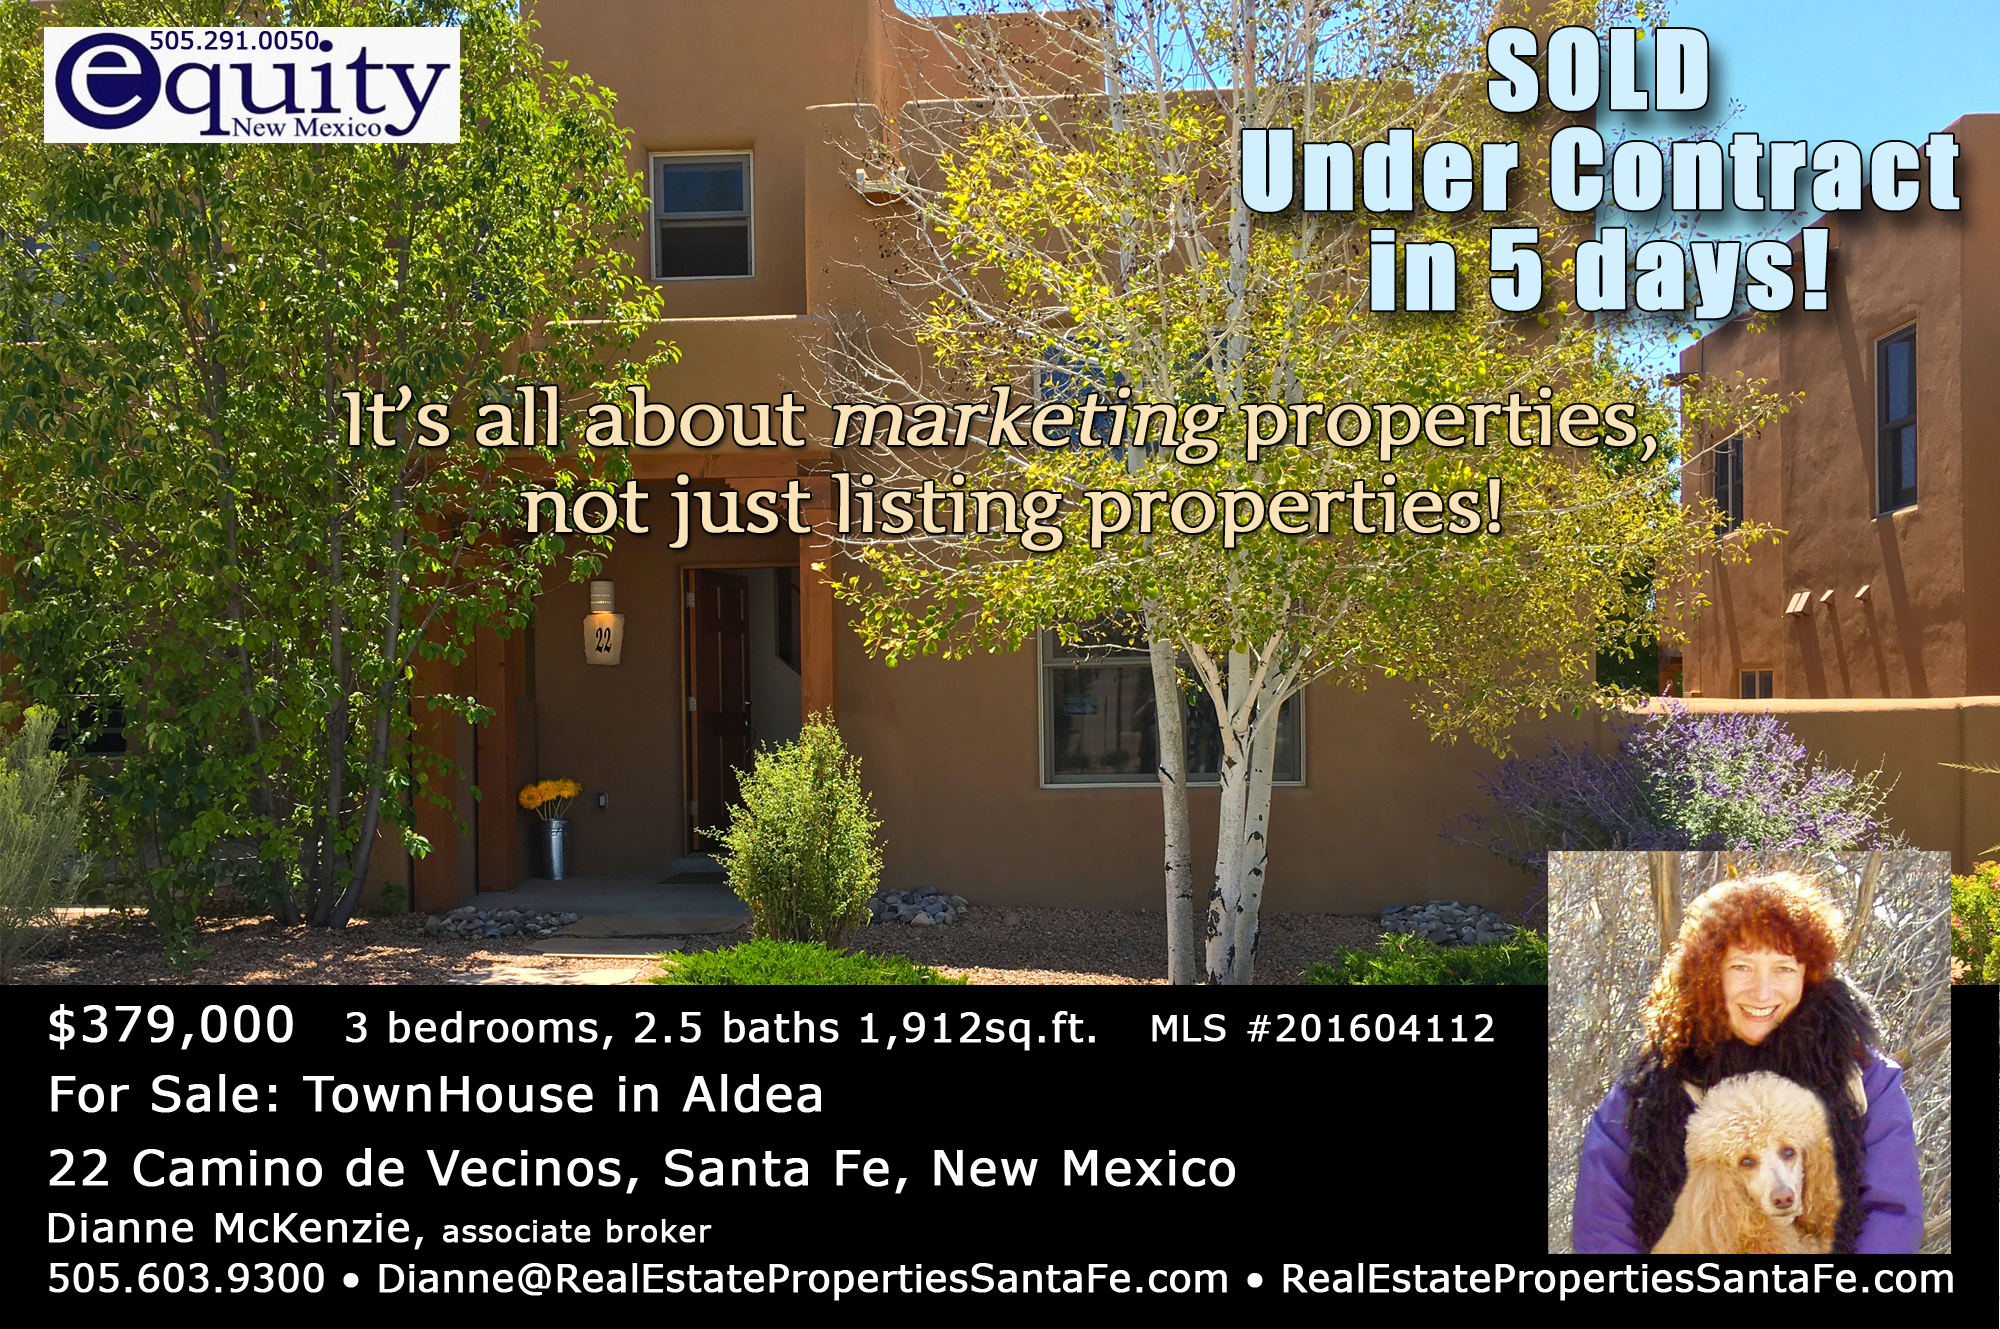 branded-images-for-listings_22-cam-de-vecinos-sold